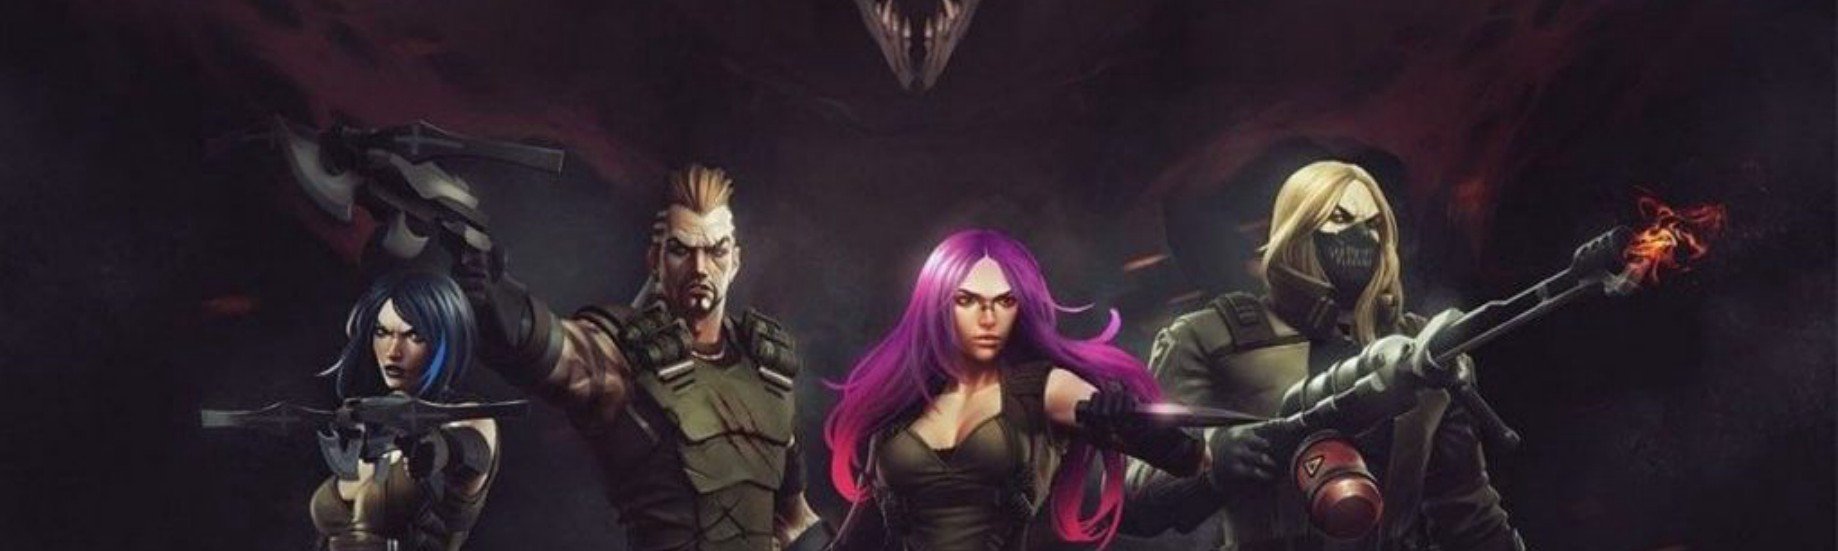 REVIEW] The Order Of Vampire Hunters - TABLETOP TRIBE - Medium